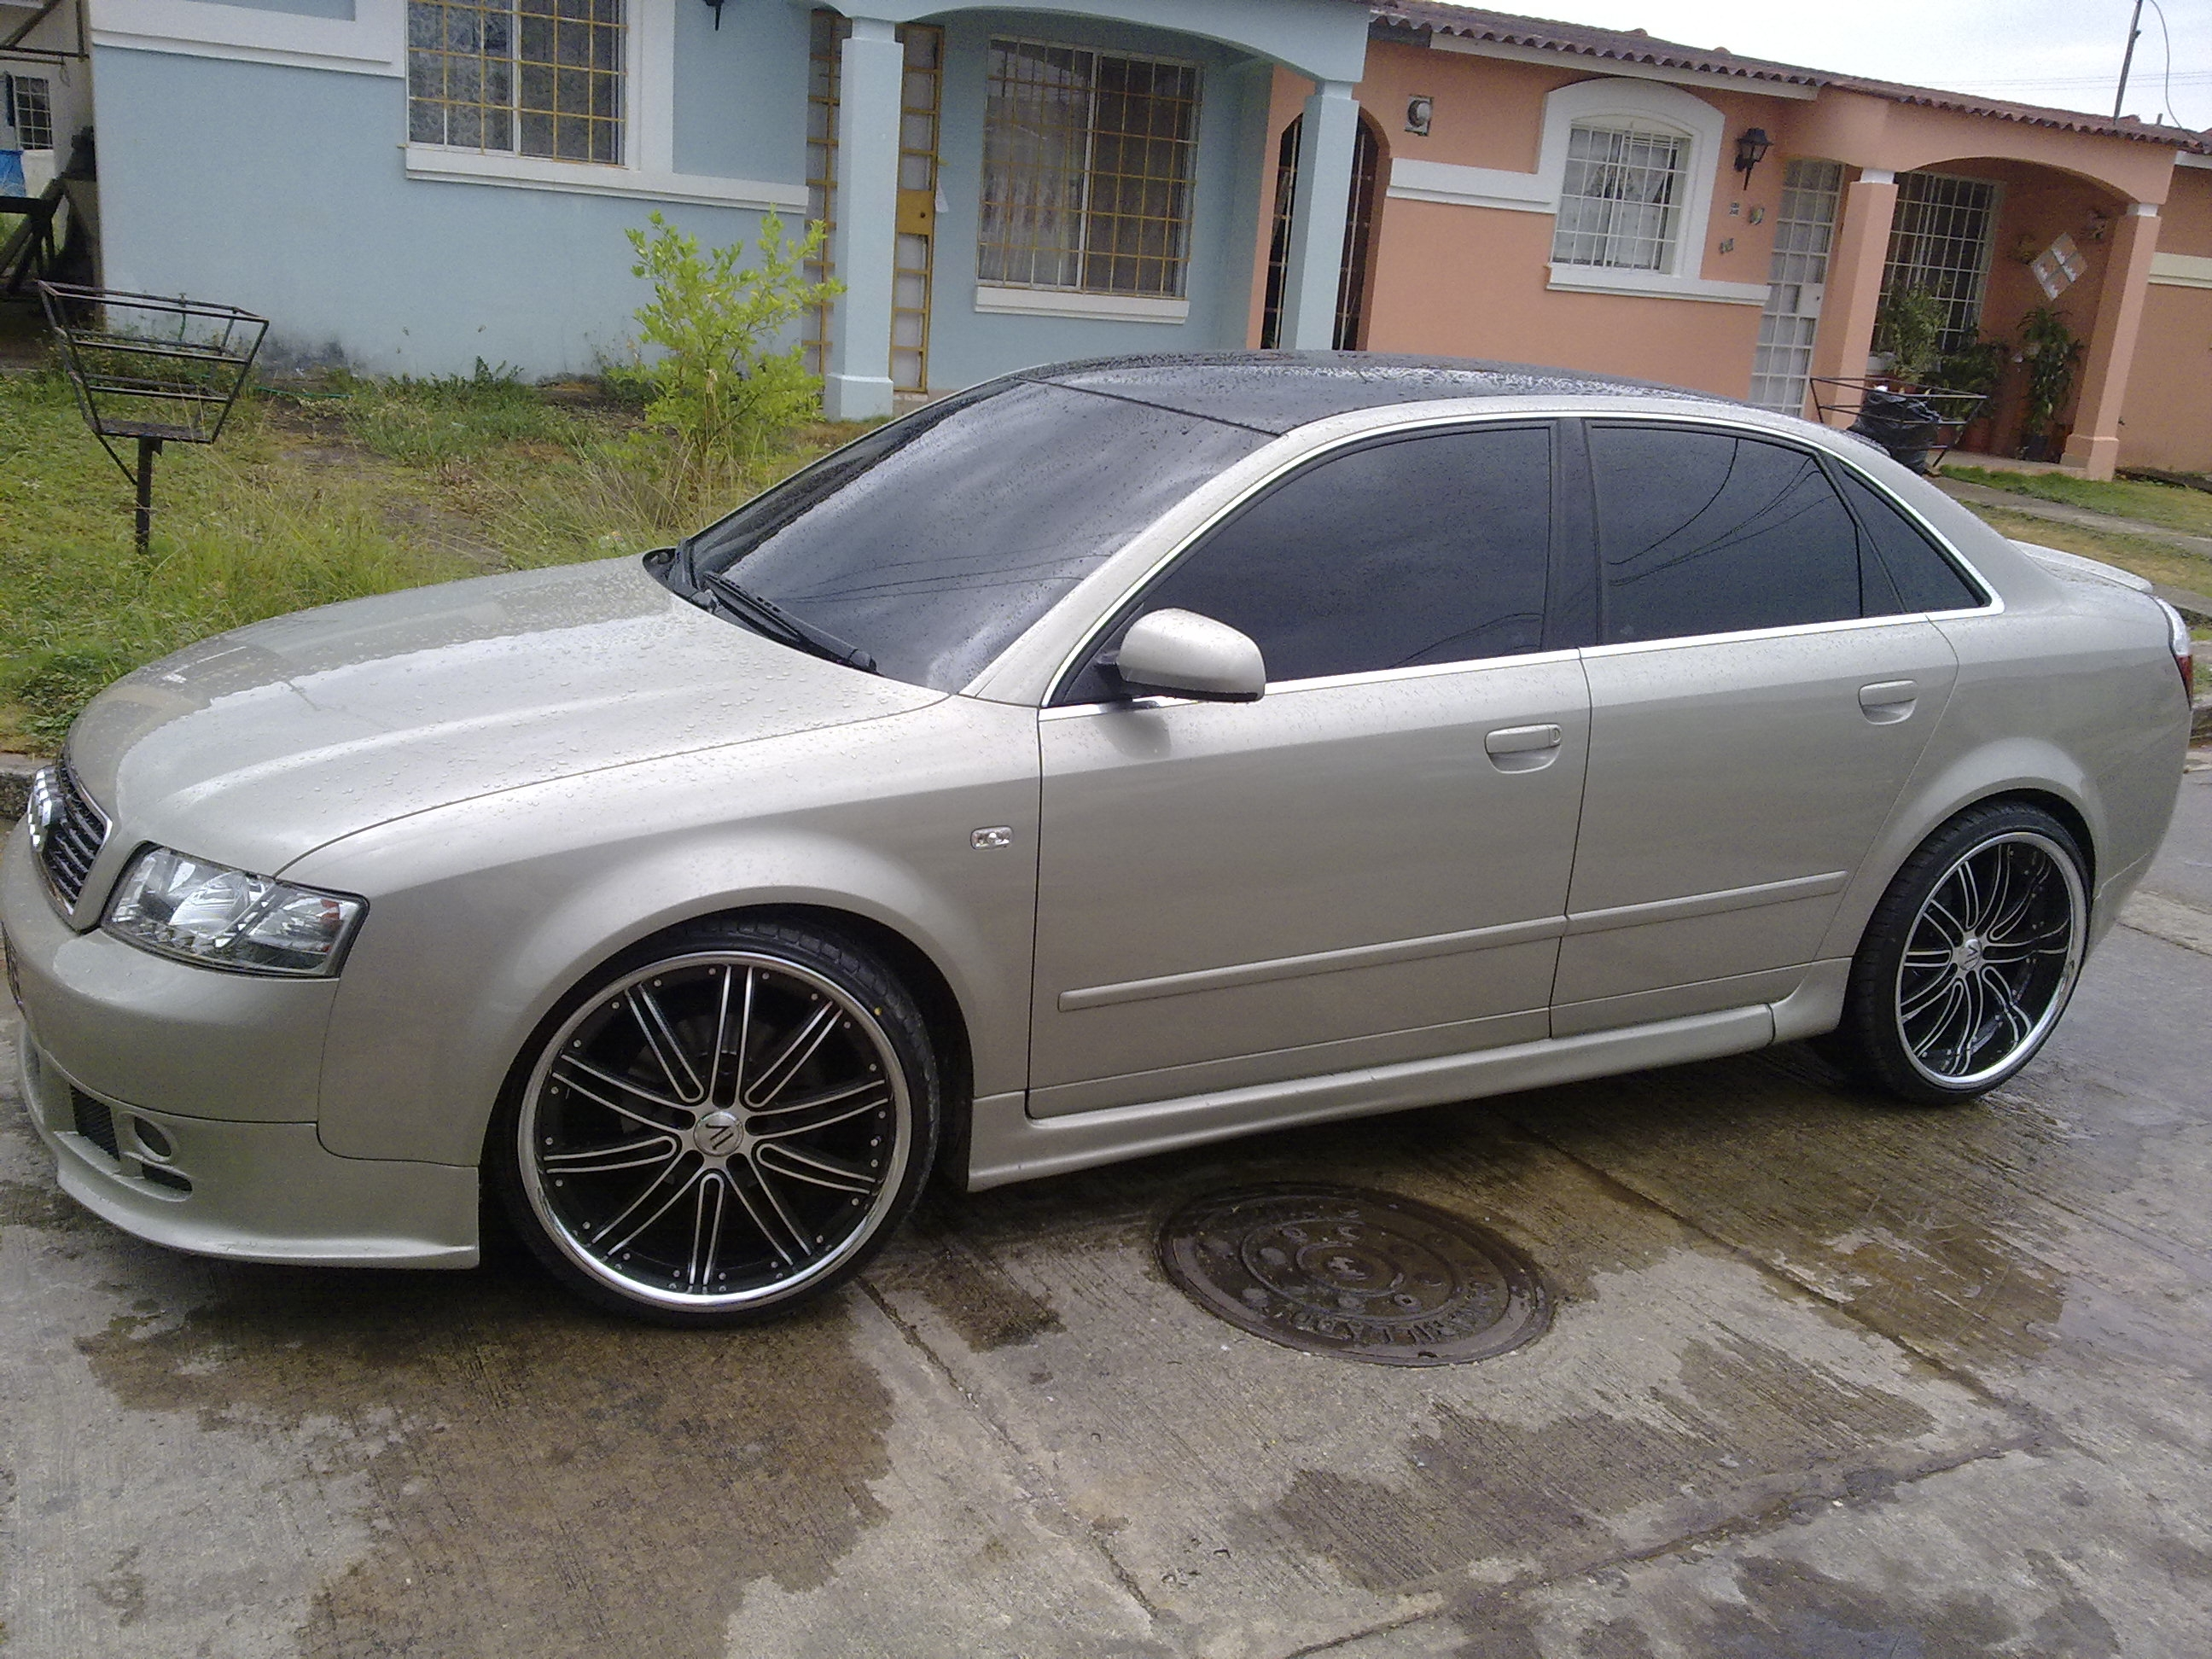 vj jimenez 2004 audi a4 specs photos modification info at cardomain. Black Bedroom Furniture Sets. Home Design Ideas